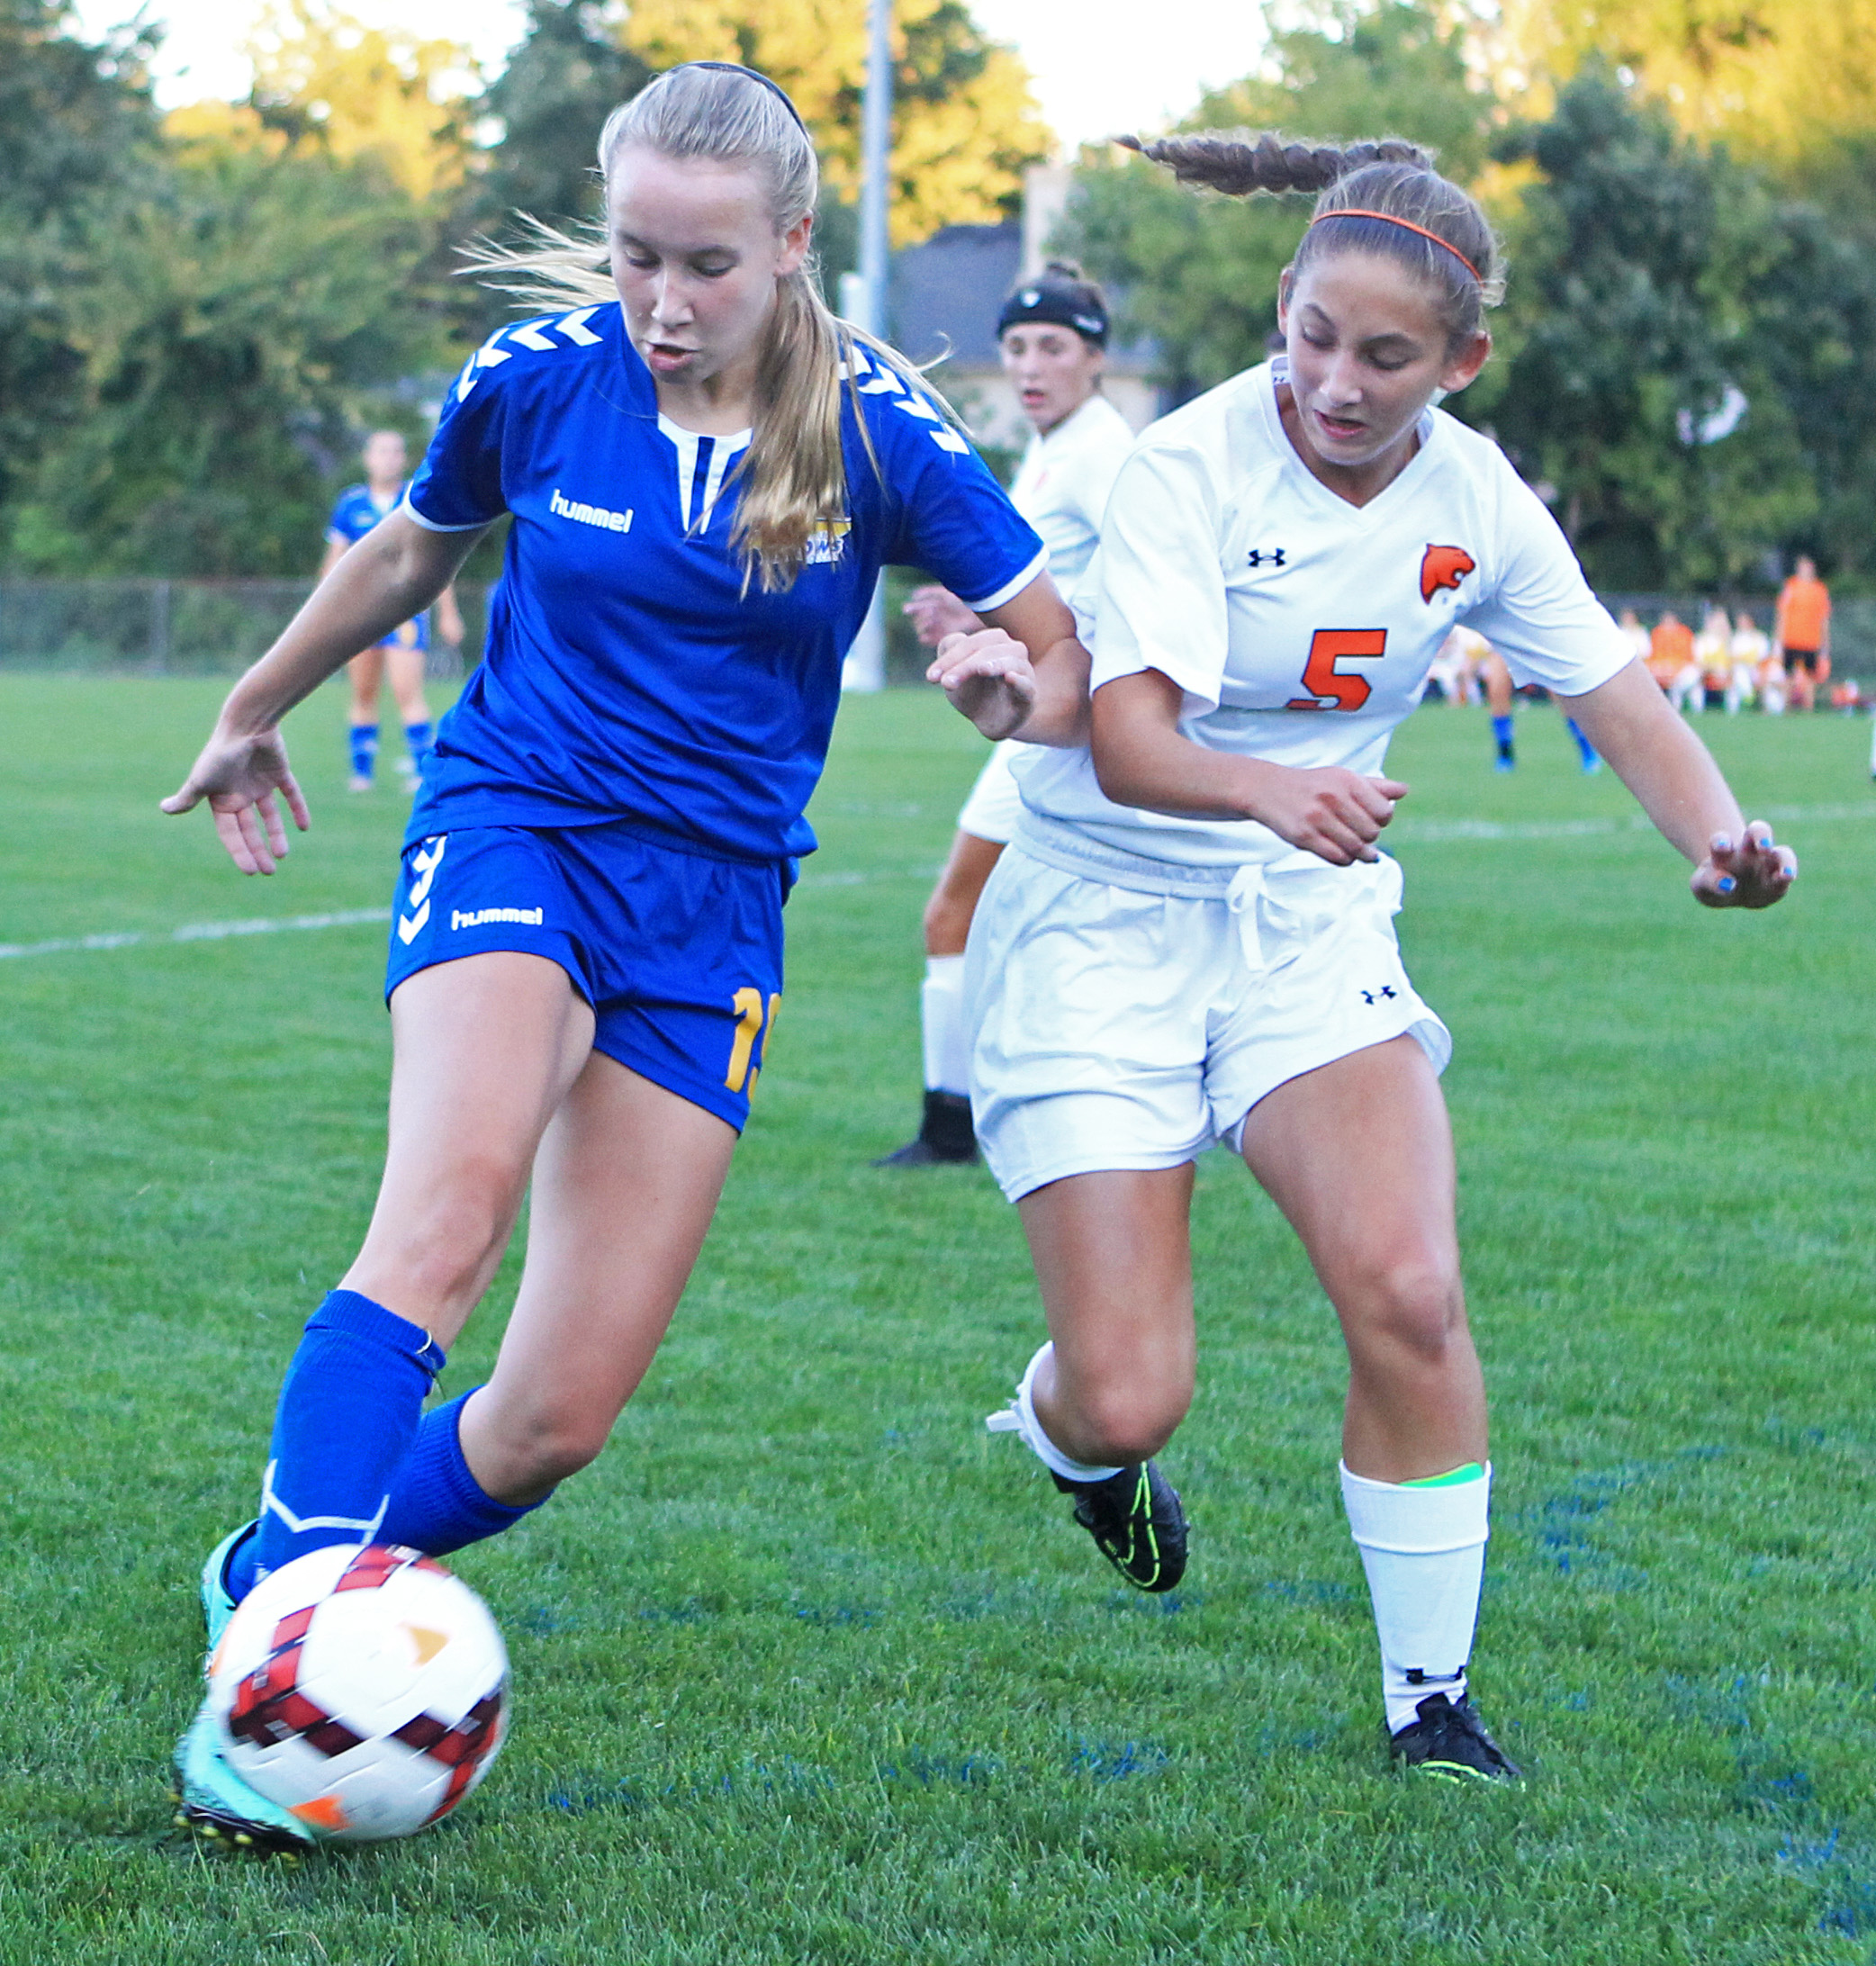 St. Ursula freshman defender Lily Turski tries to clear the ball while battling with Southview High School sophomore forward Abigail Mann during the game at Southview High School in Sylvania on Monday, Sept. 19, 2016. Southview won the game 4-2.